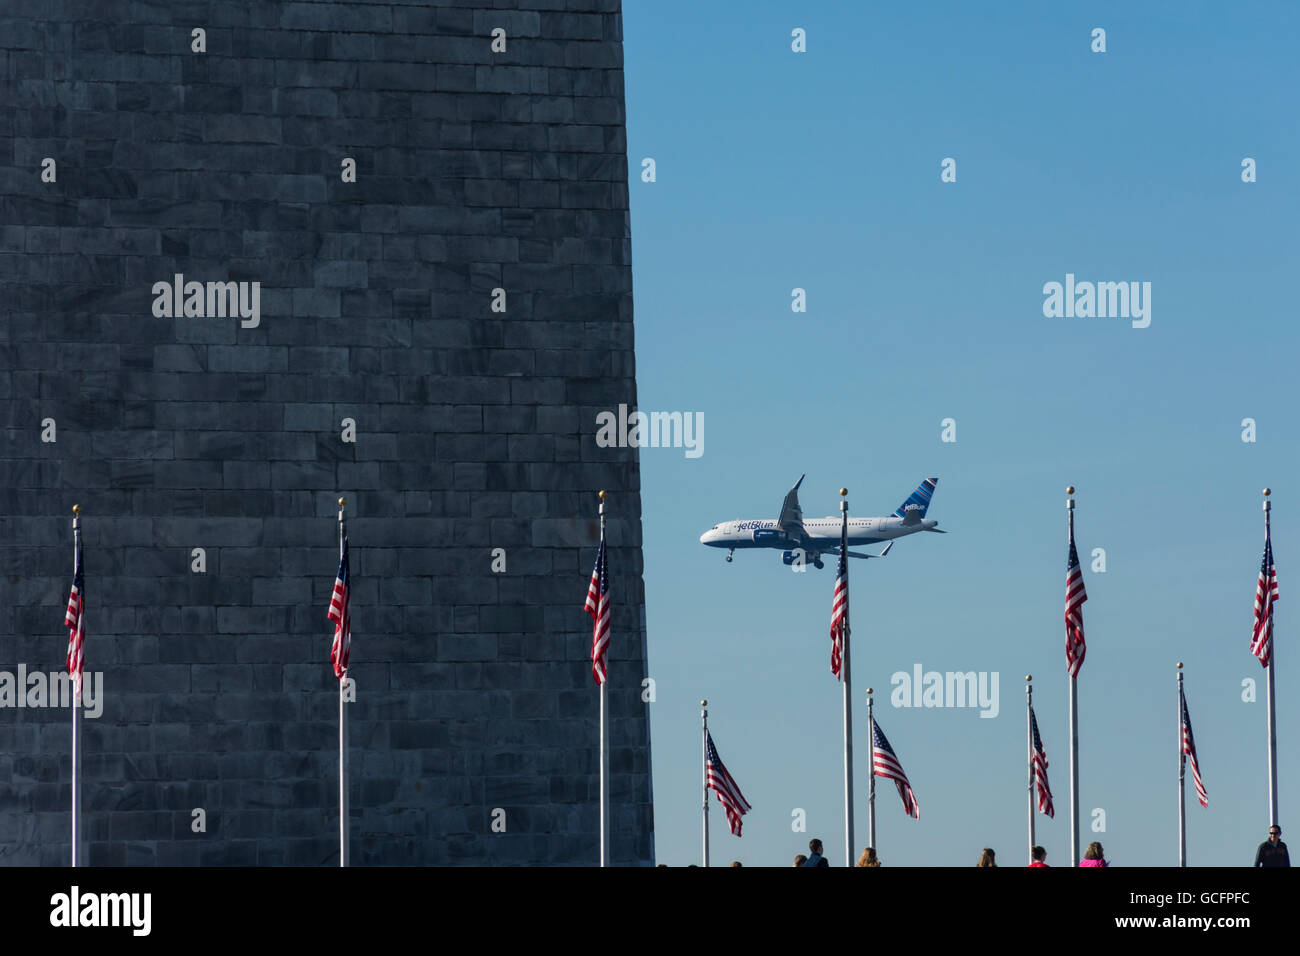 A jetBlue Airbus A320E aircraft with winglets (sharklets) flies by the Washington Monument on way to land at Reagan - Stock Image